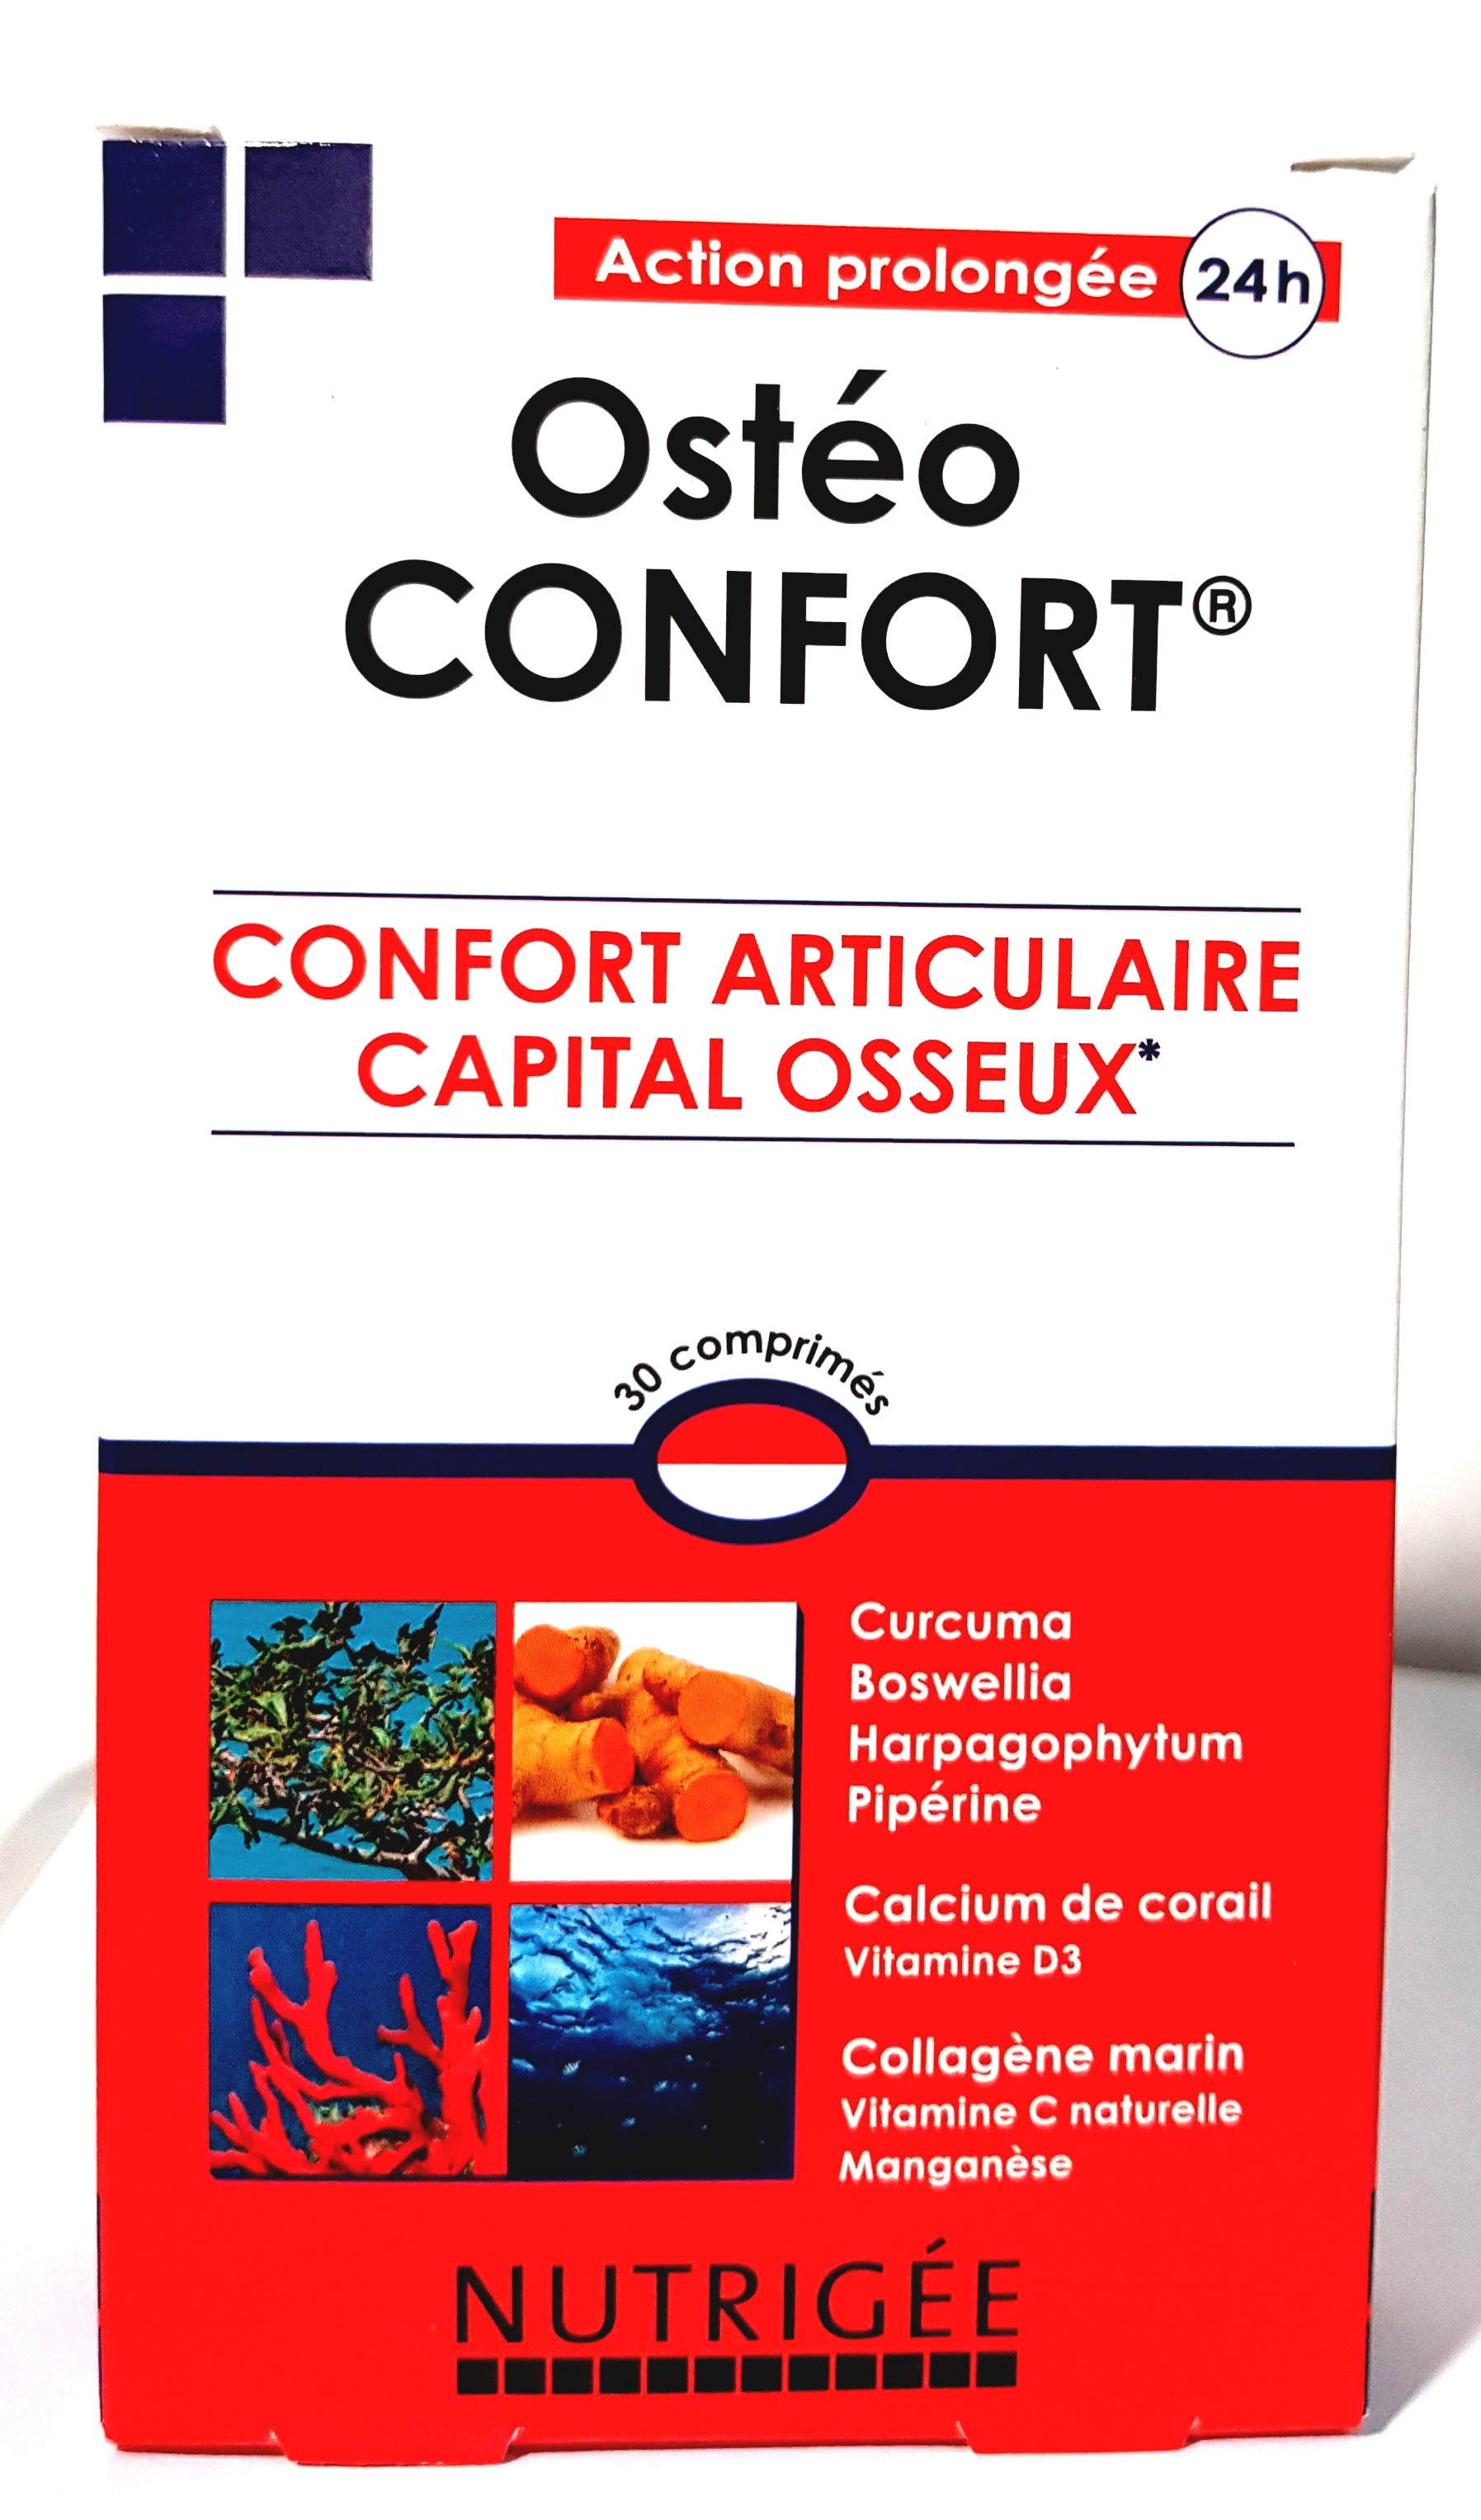 Osteo Confort NUTRIGEE